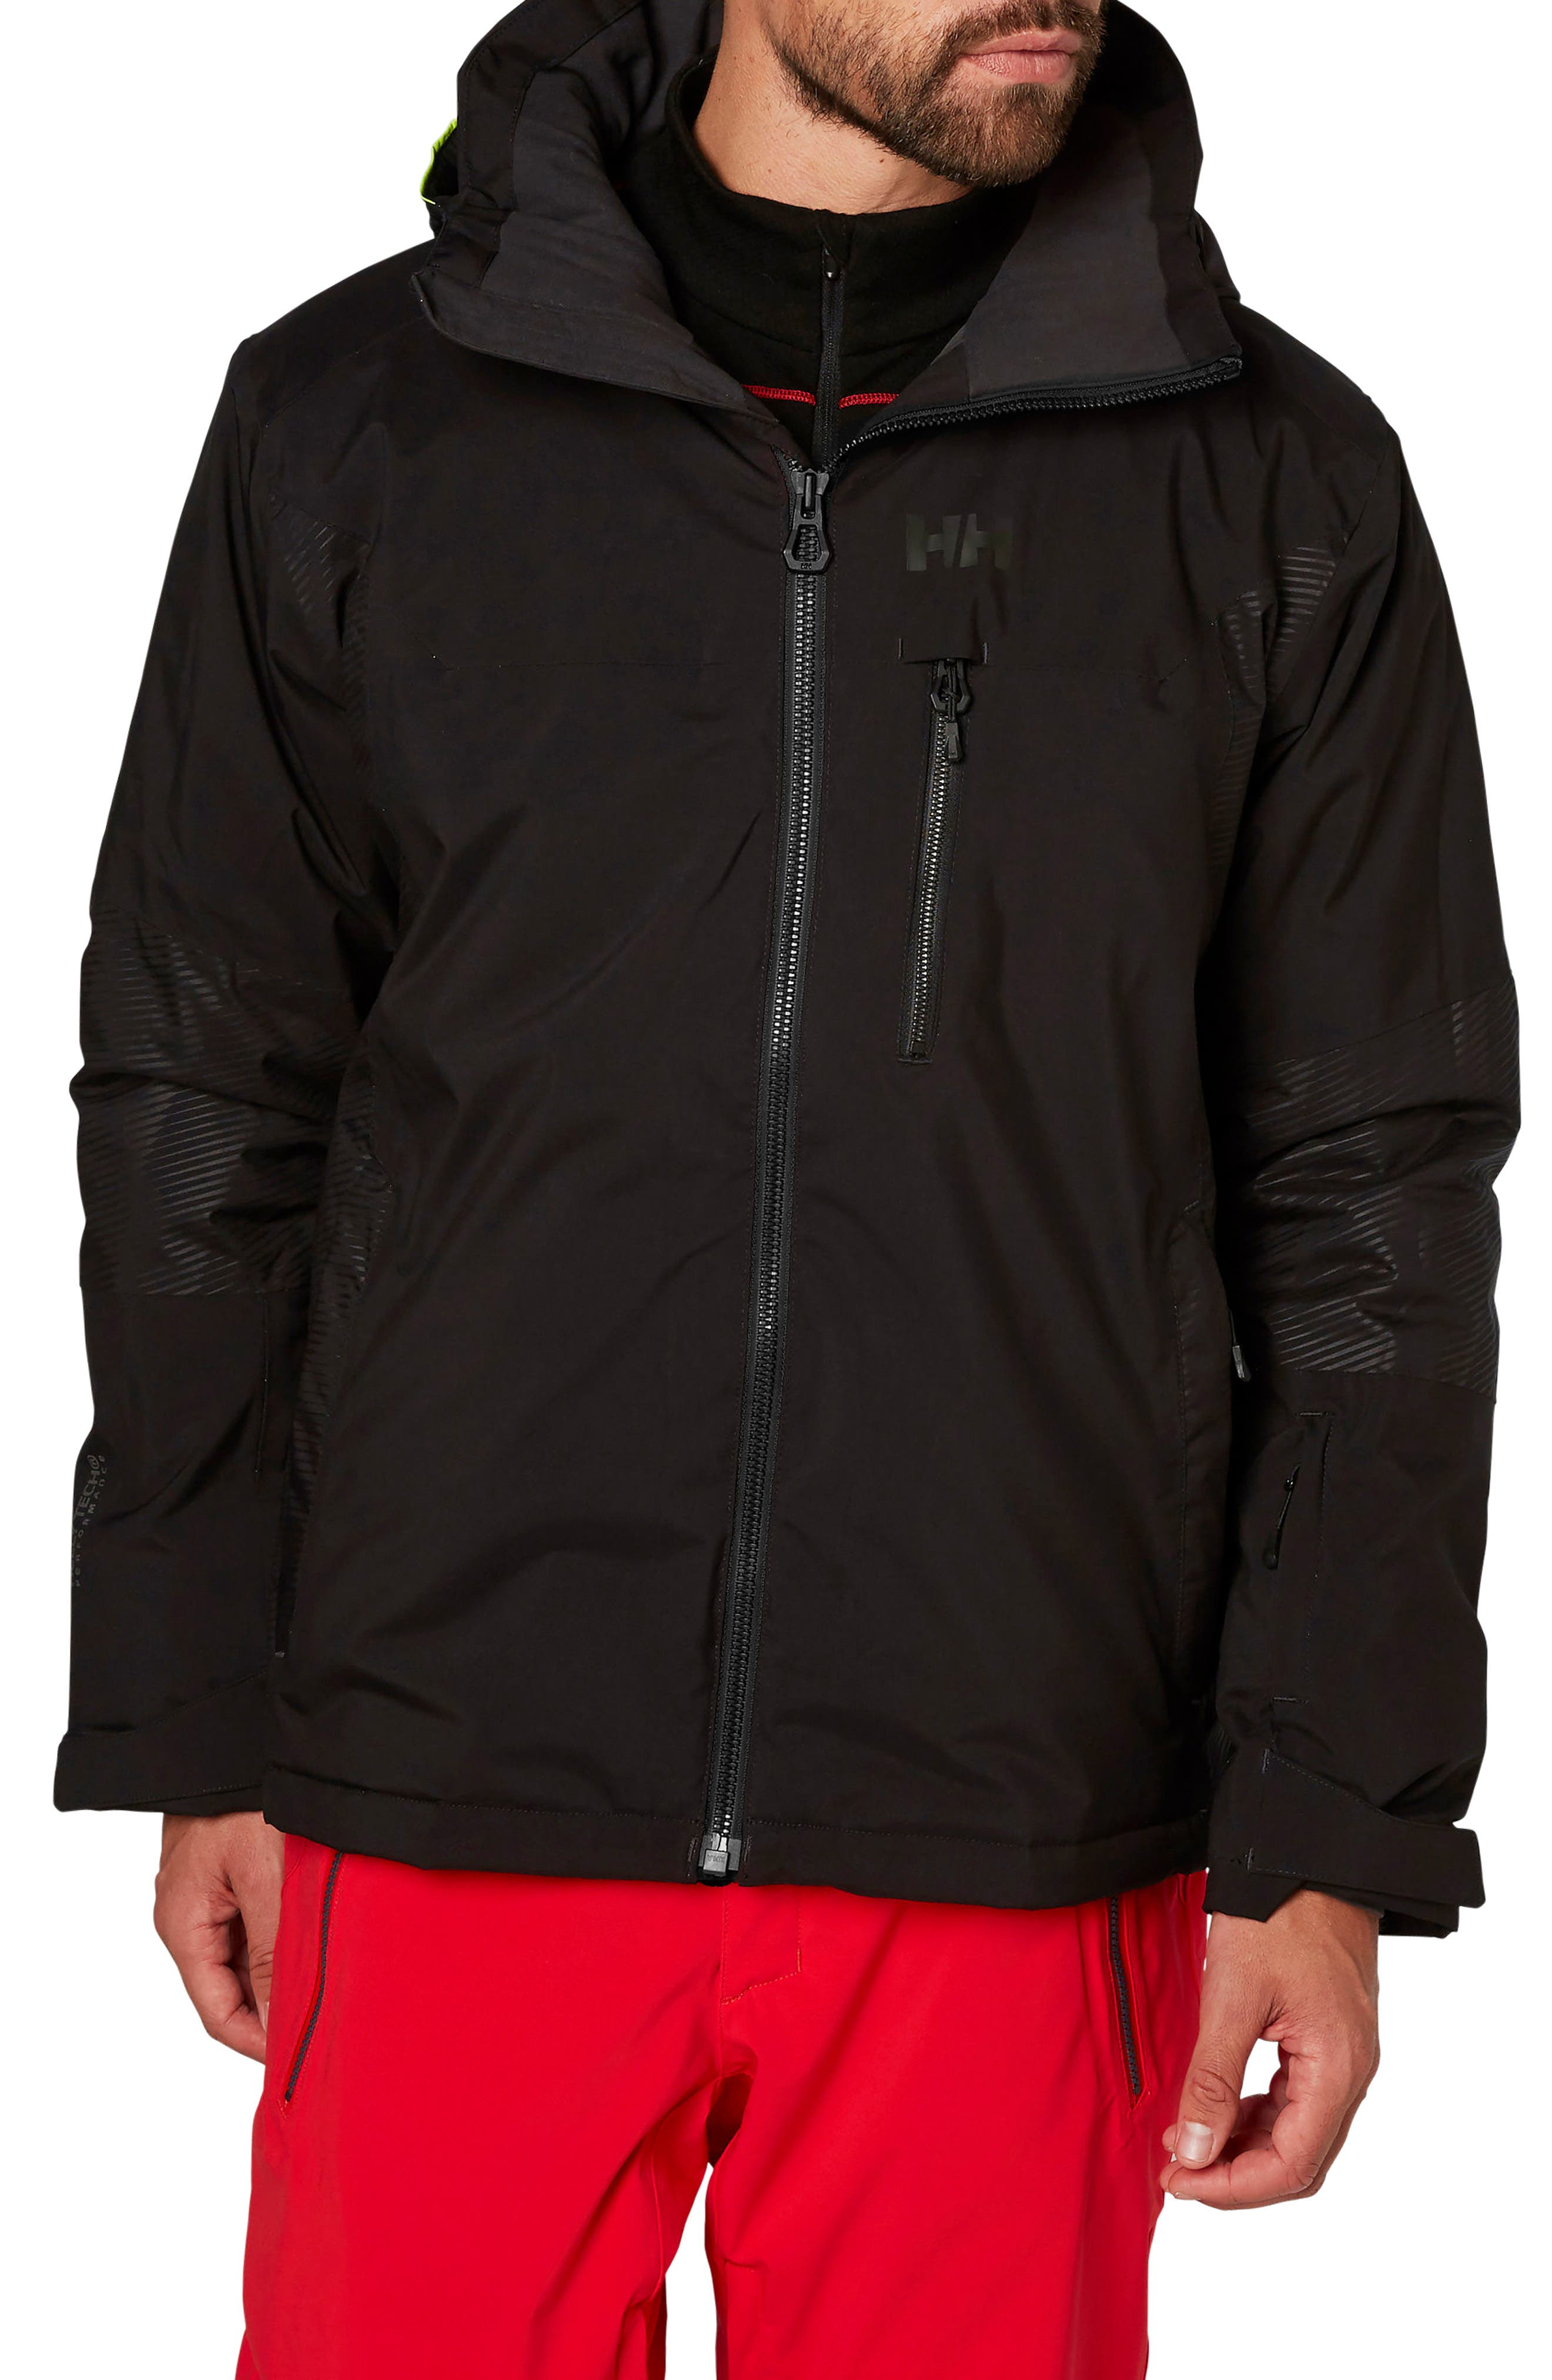 Alternate Image 1 Selected - Helly Hansen Double Diamond Waterproof Jacket